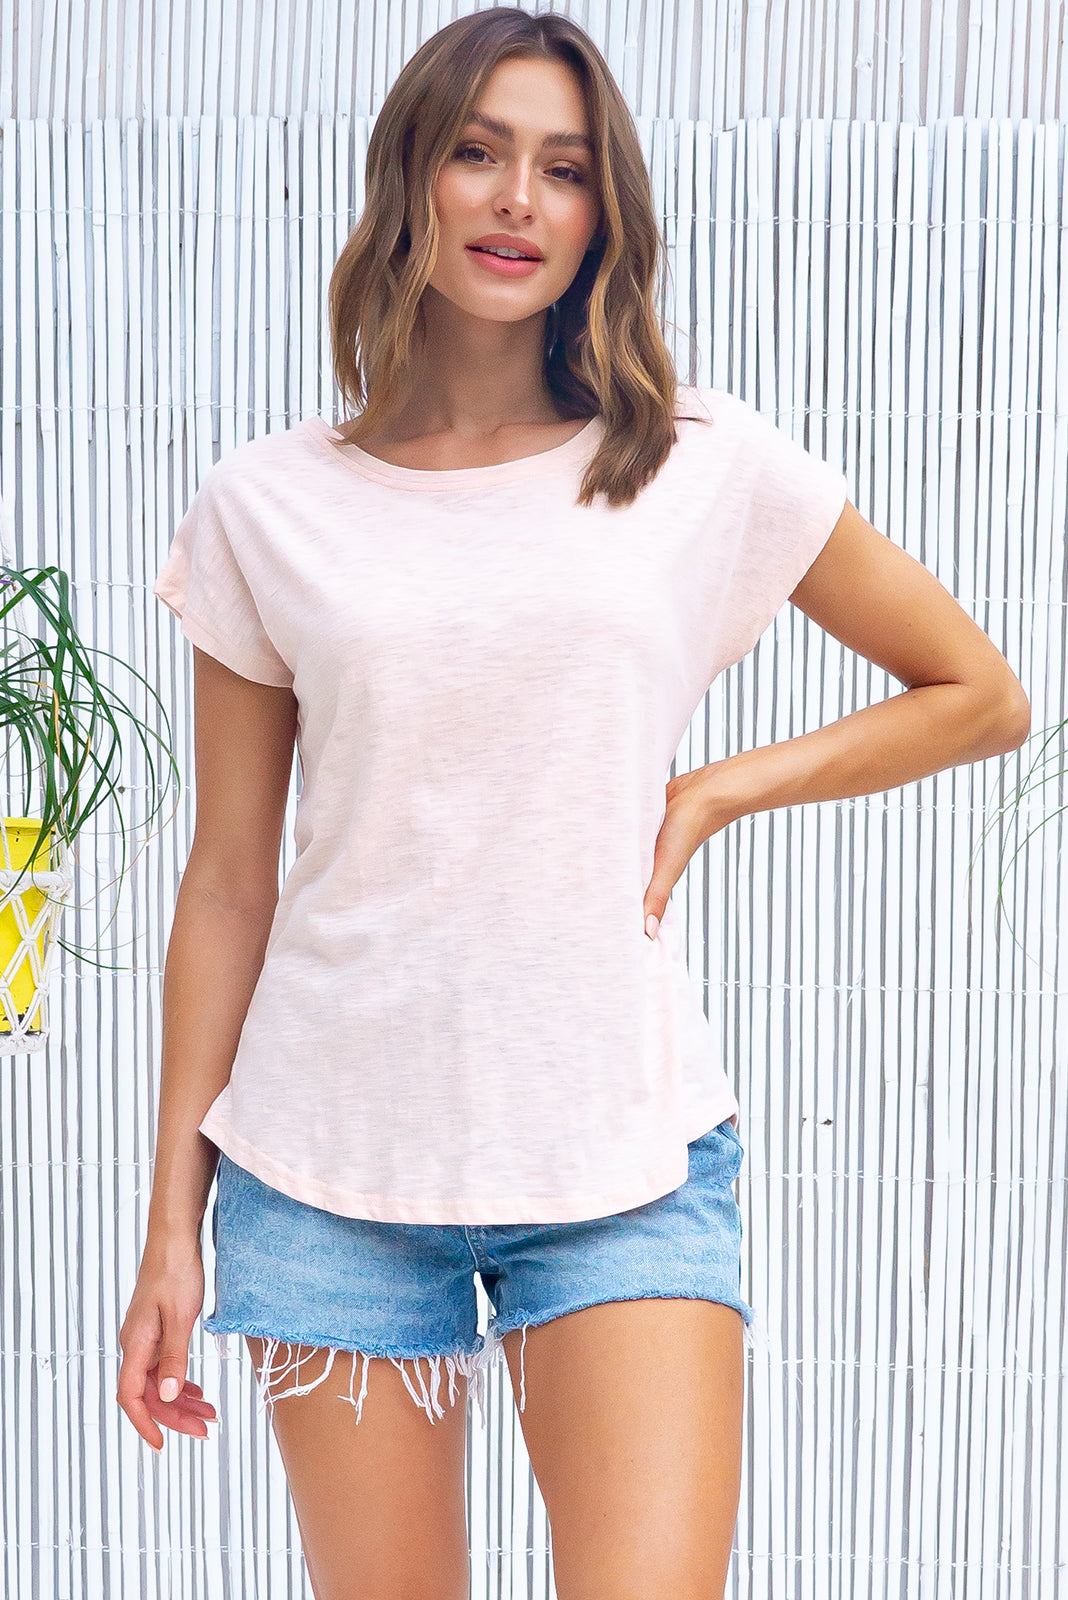 The Phoenix Tee Palest Apricot is a oversized classic T-shirt featuring  ultra lightweight,  curved hem and Knit 100% cotton in pale, dusty apricot/nude tone.